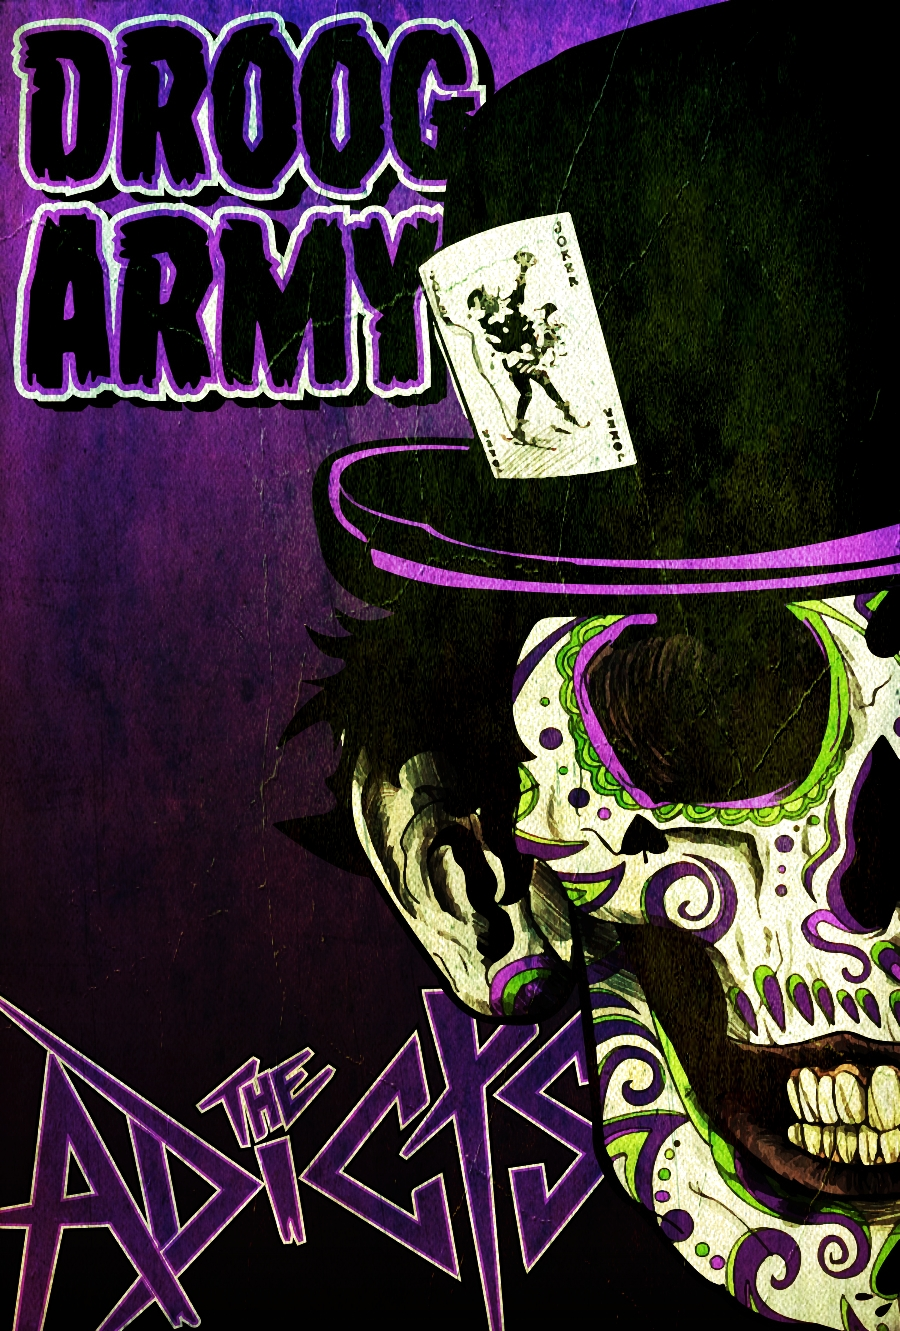 Droog Army Poster for The Adicts